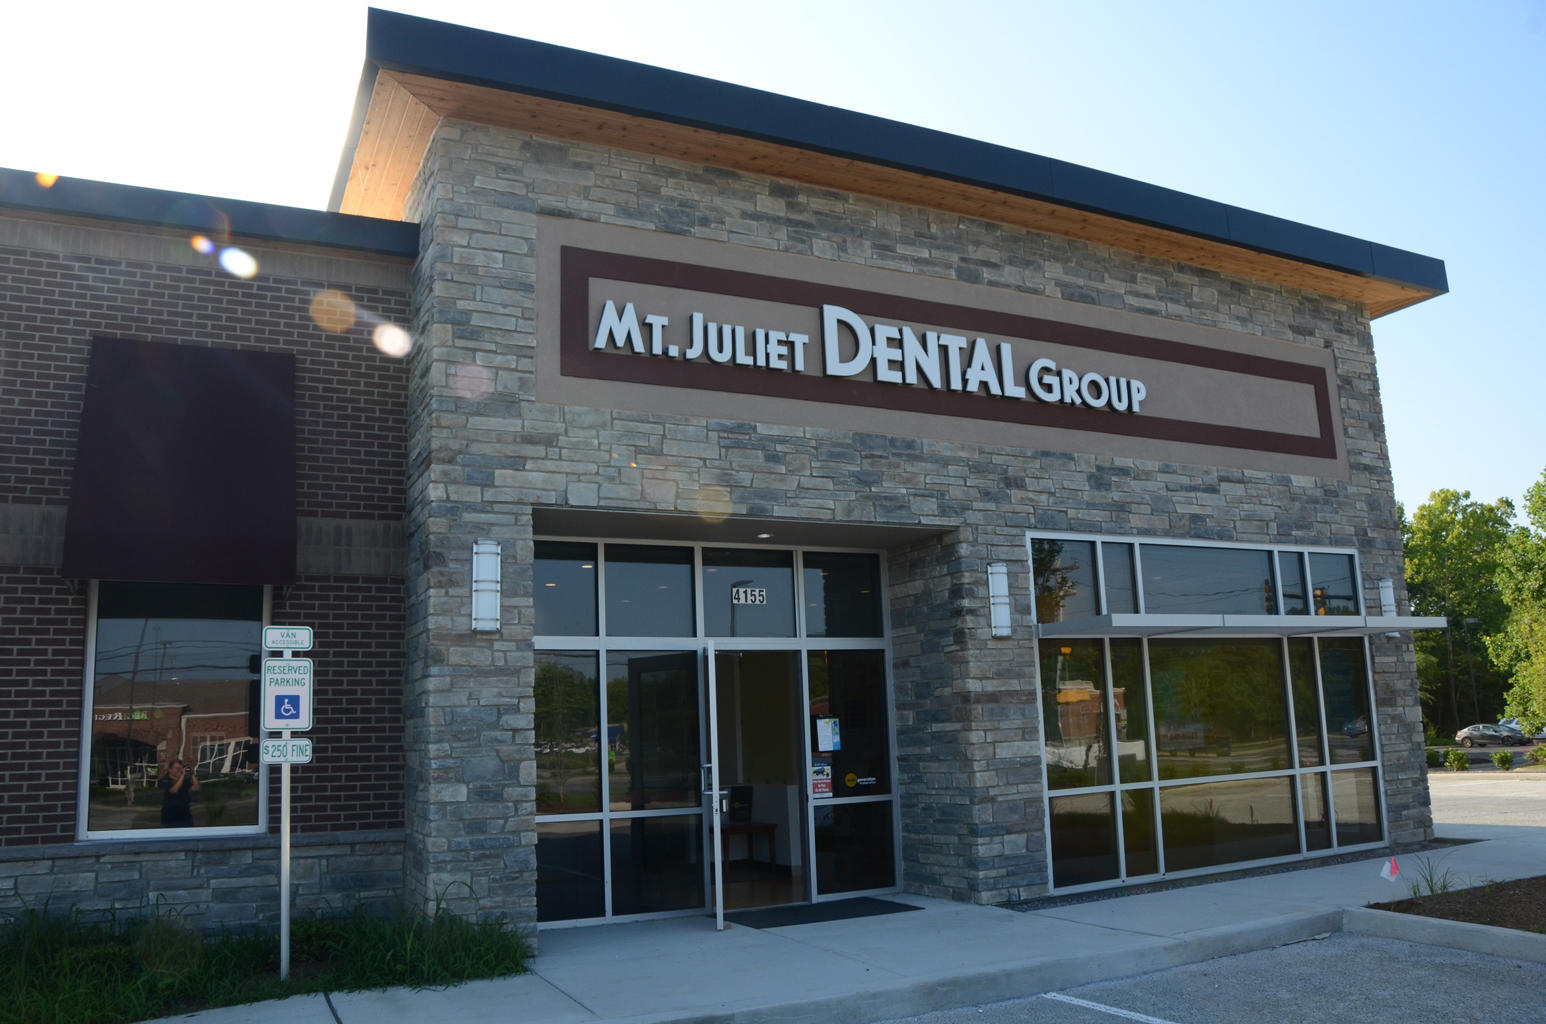 Mt Juliet Dental Group image 1